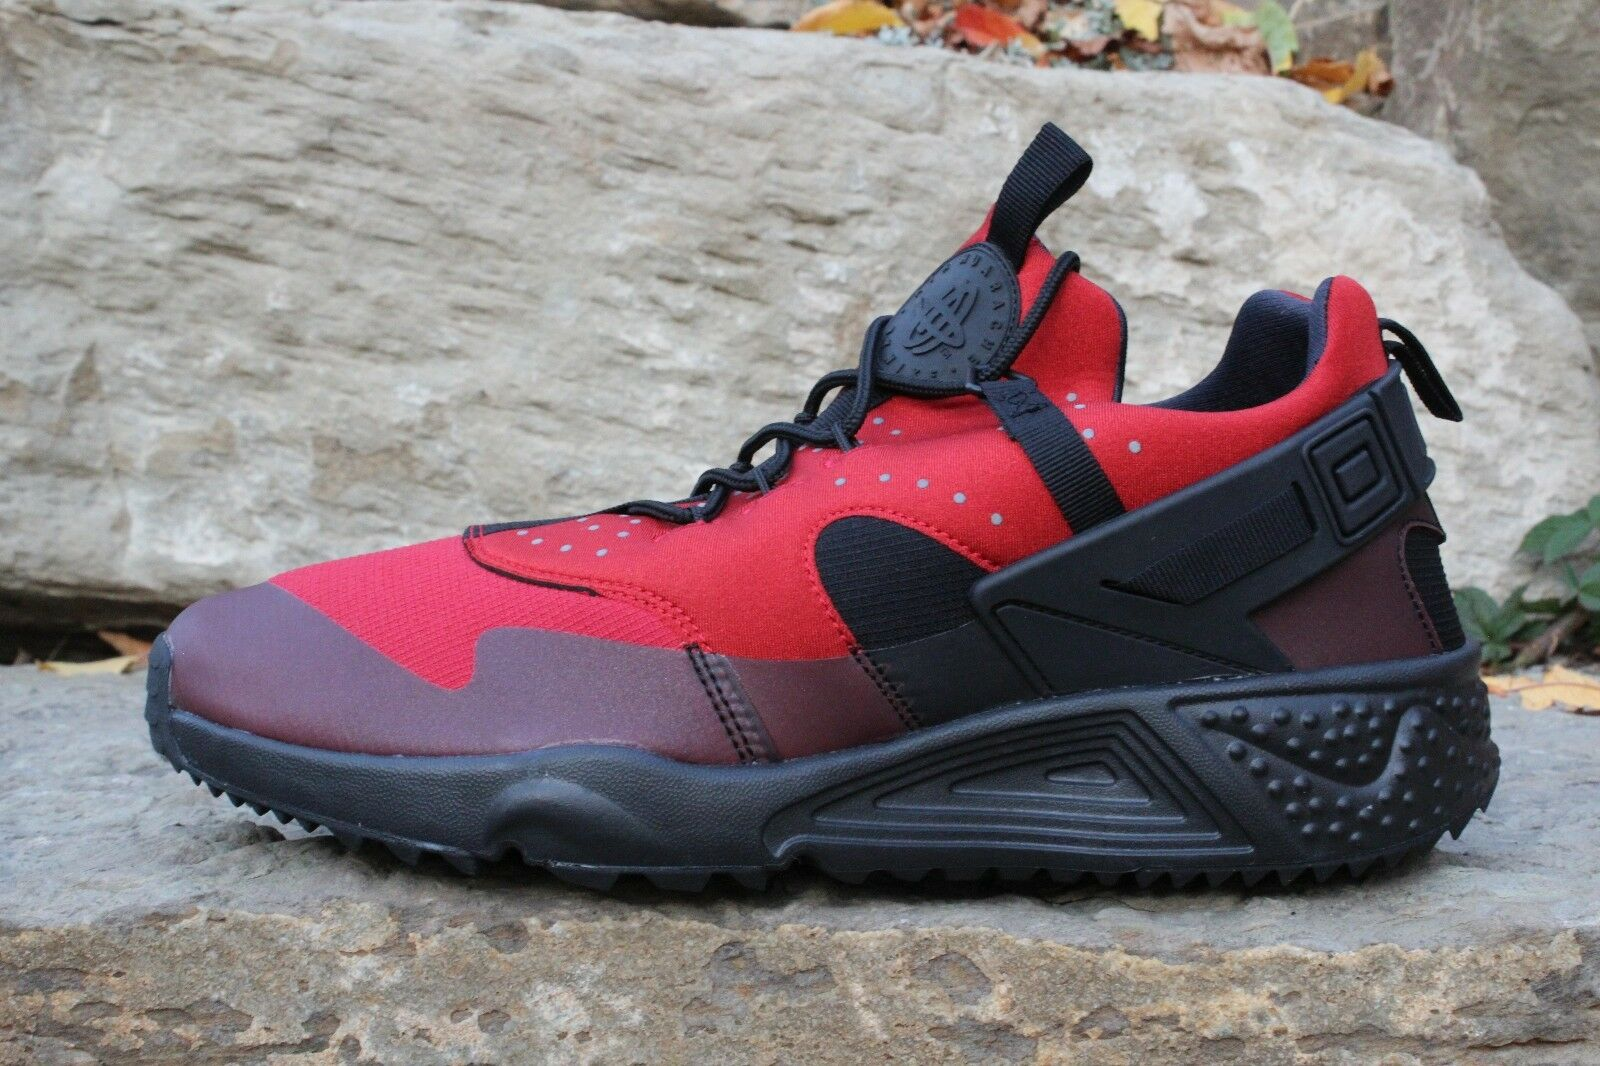 11 New Mens Nike Air Huarache Utility Shoes Gym Red Black SZ 10 806807-600